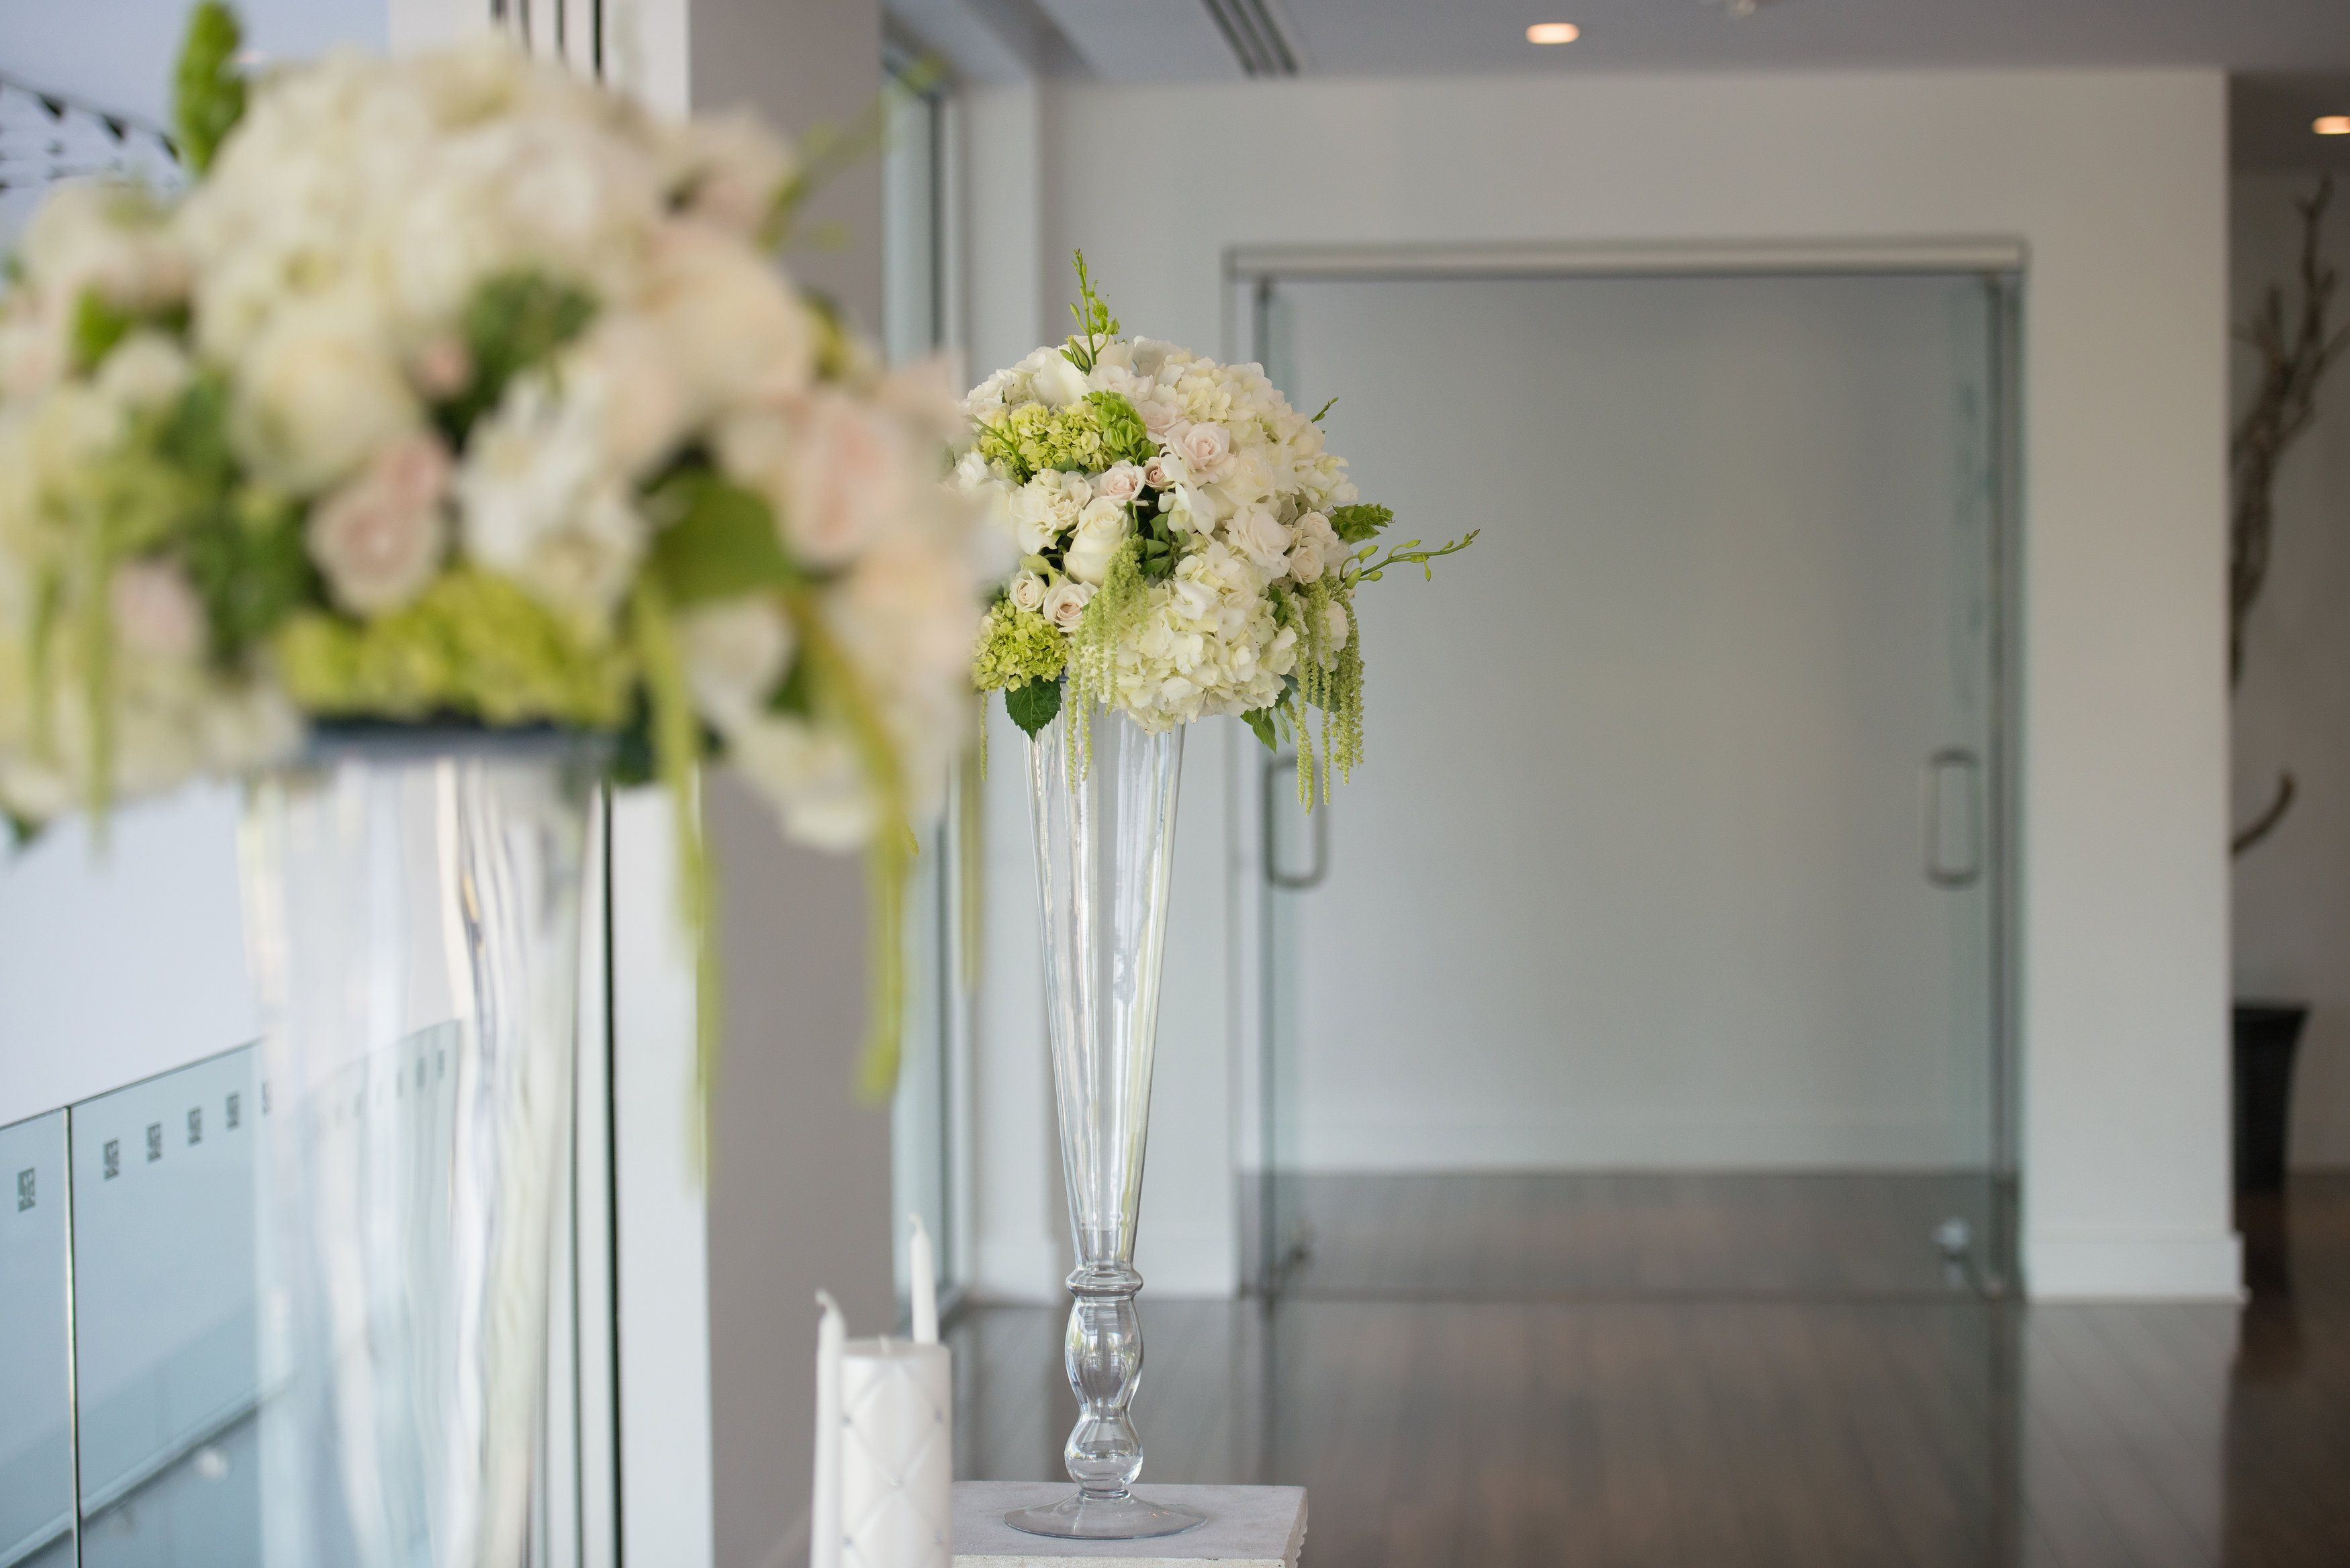 The Gallery White Flower Arrangements Tall Glass Vases Modern Flower Arrangements